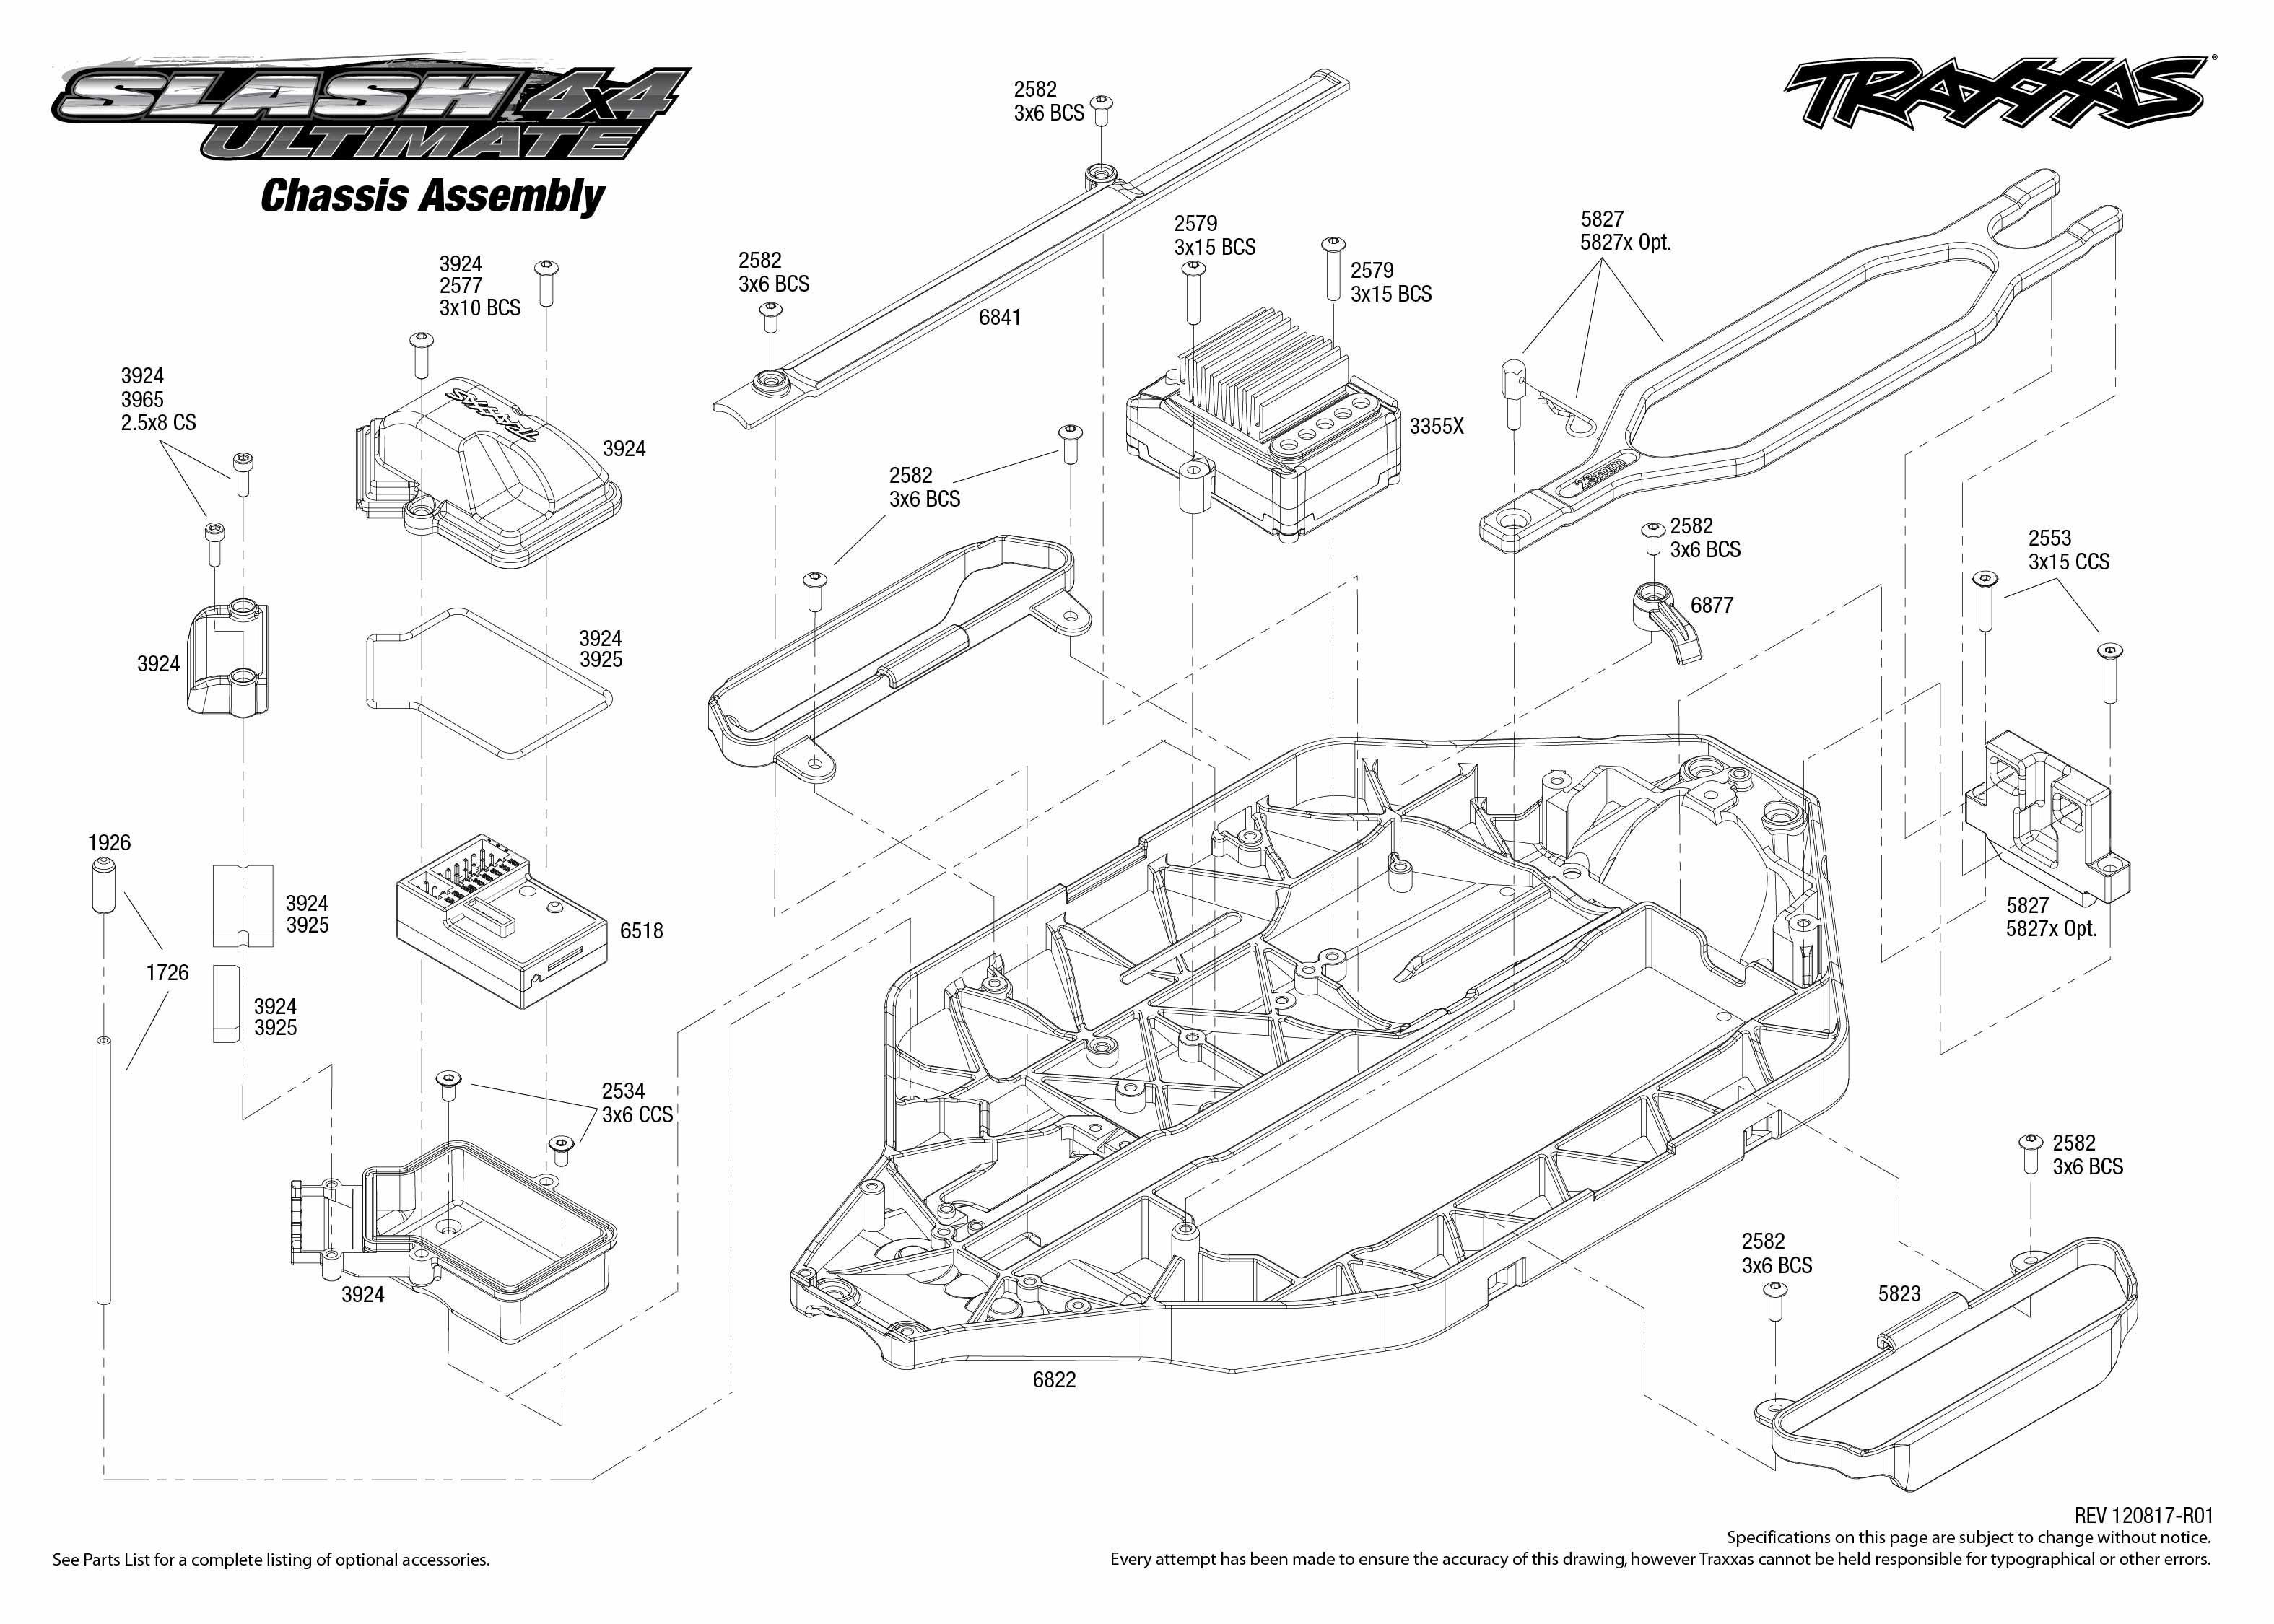 Yamaha Xt 125 Fuse Box Location Wiring Diagram Will Be A Thing Baja Designs Ttr 250 Ybr Auto Tracker Specs